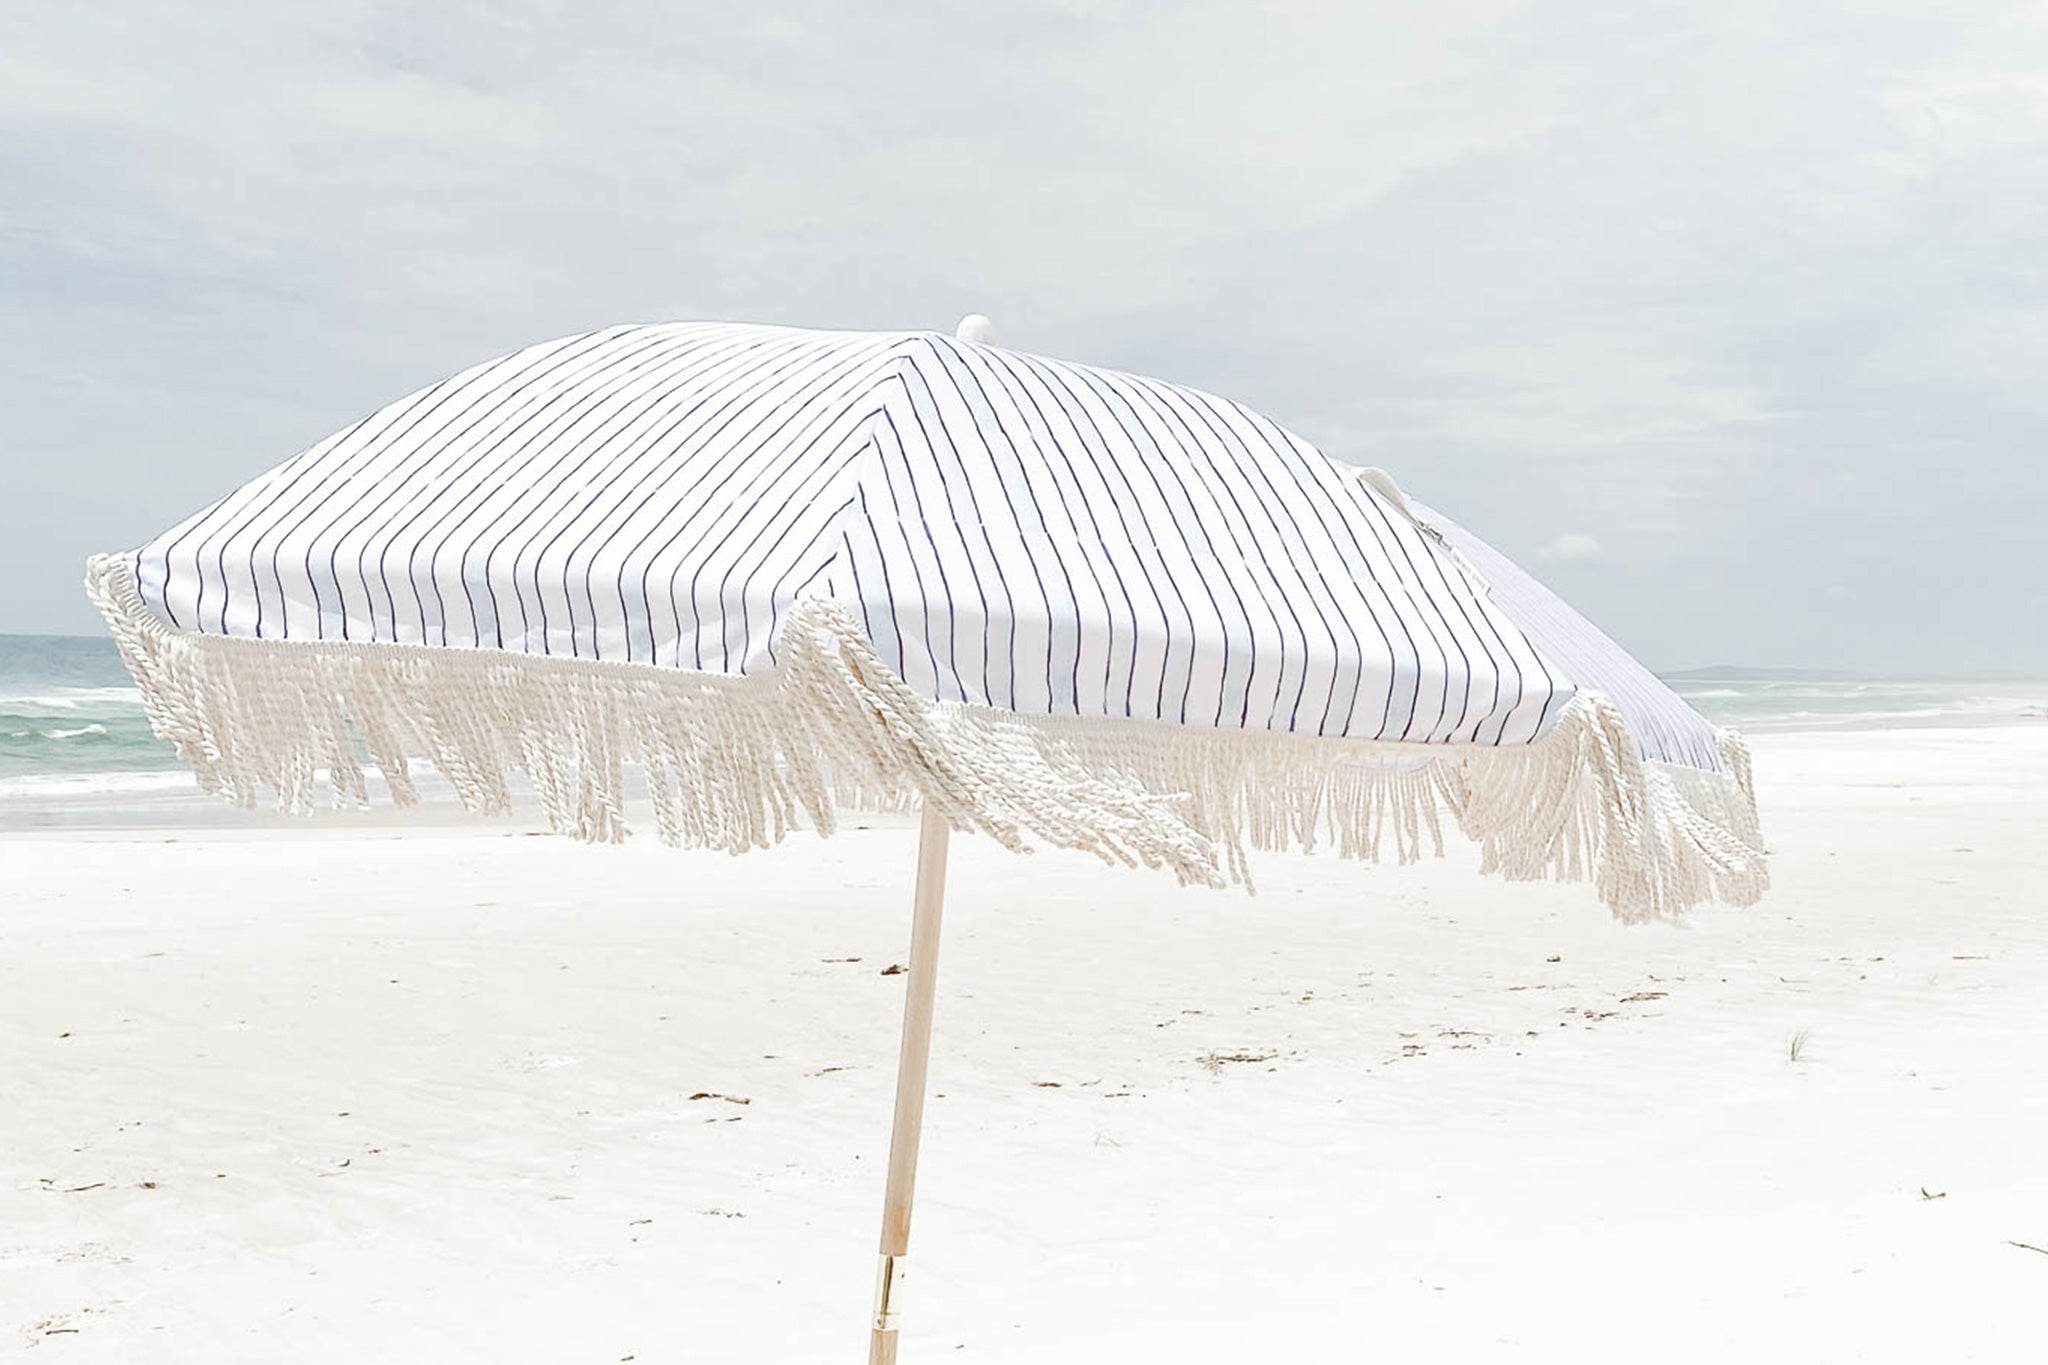 Stay shady at the beach with Salt Umbrella's